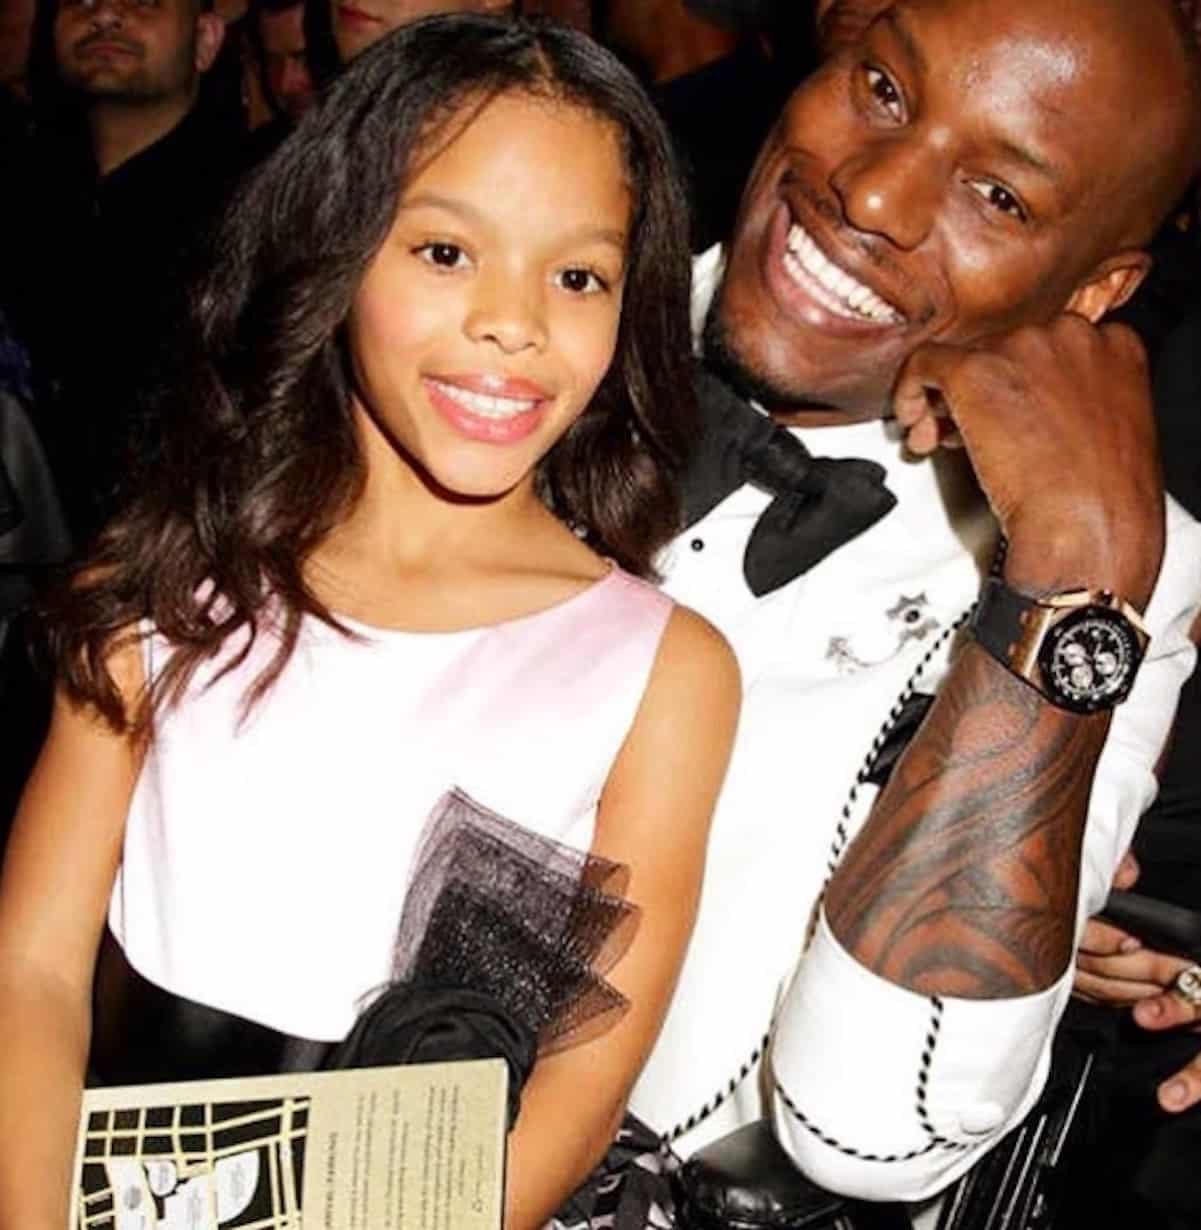 tyrese child abuse dropped